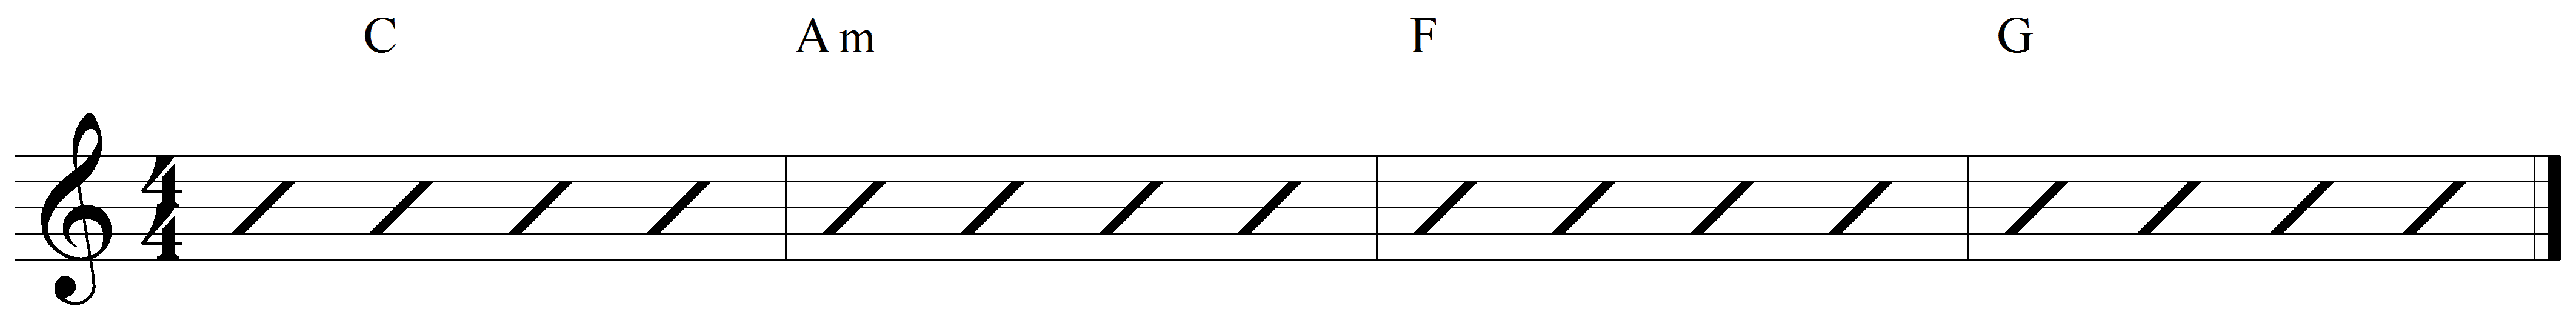 Key of C chord pattern example